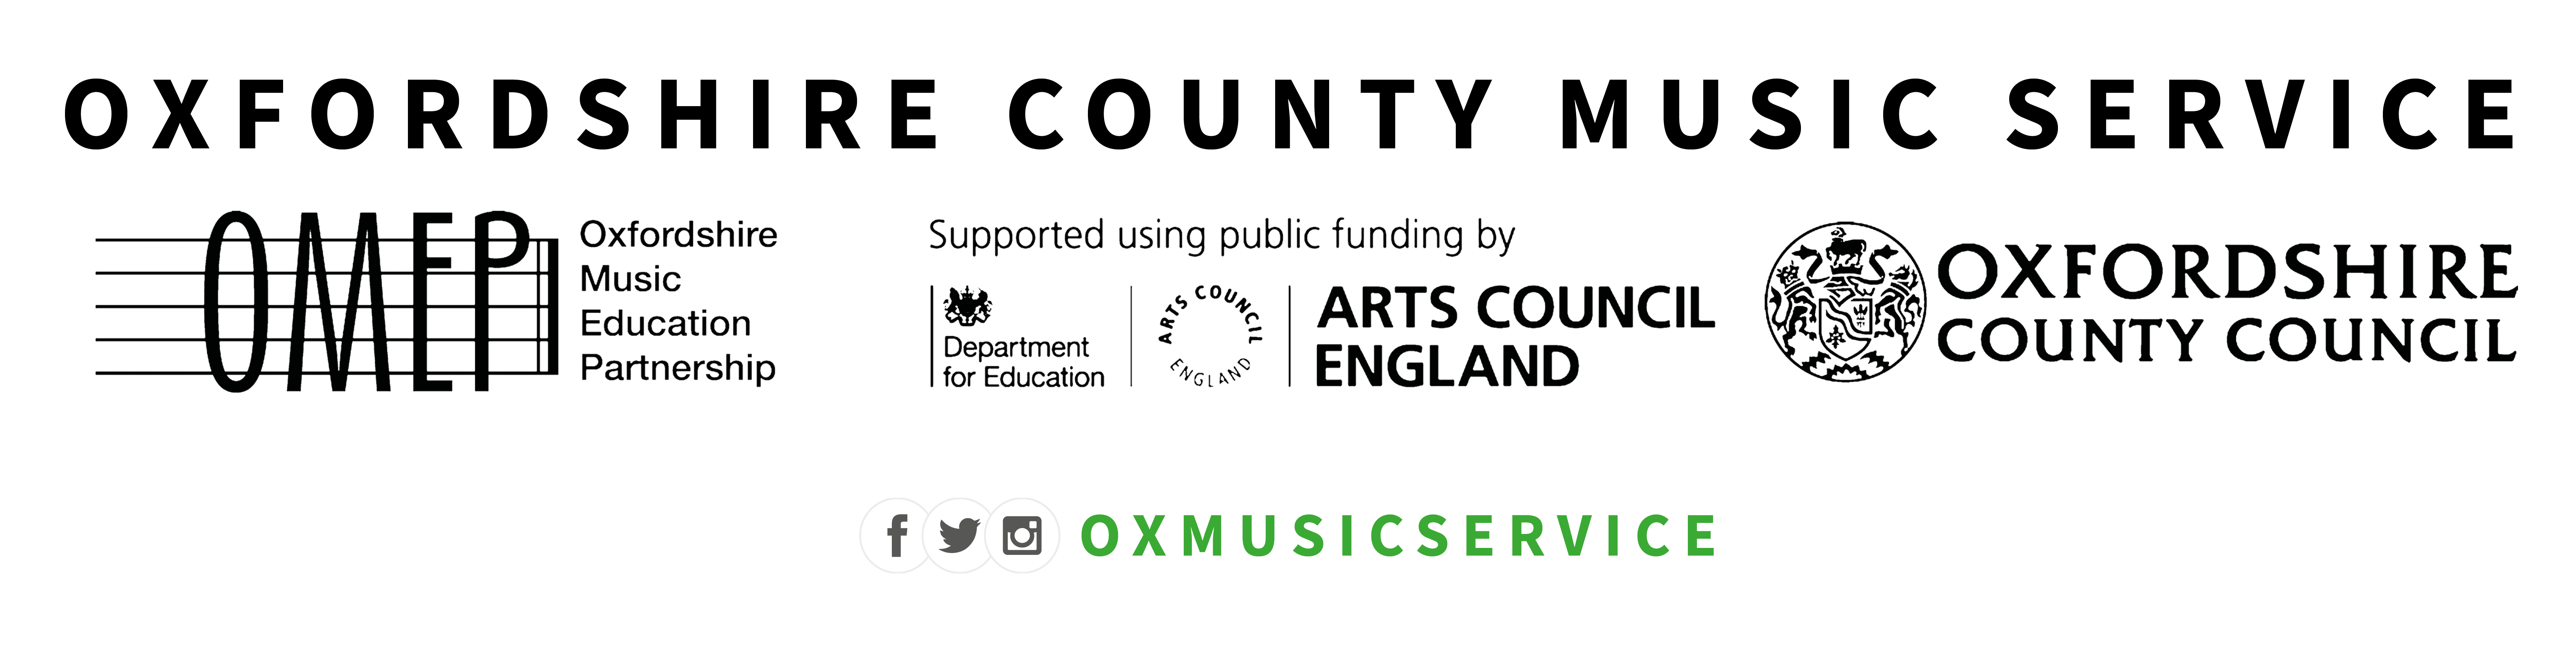 Oxfordshire County Music Service Logo